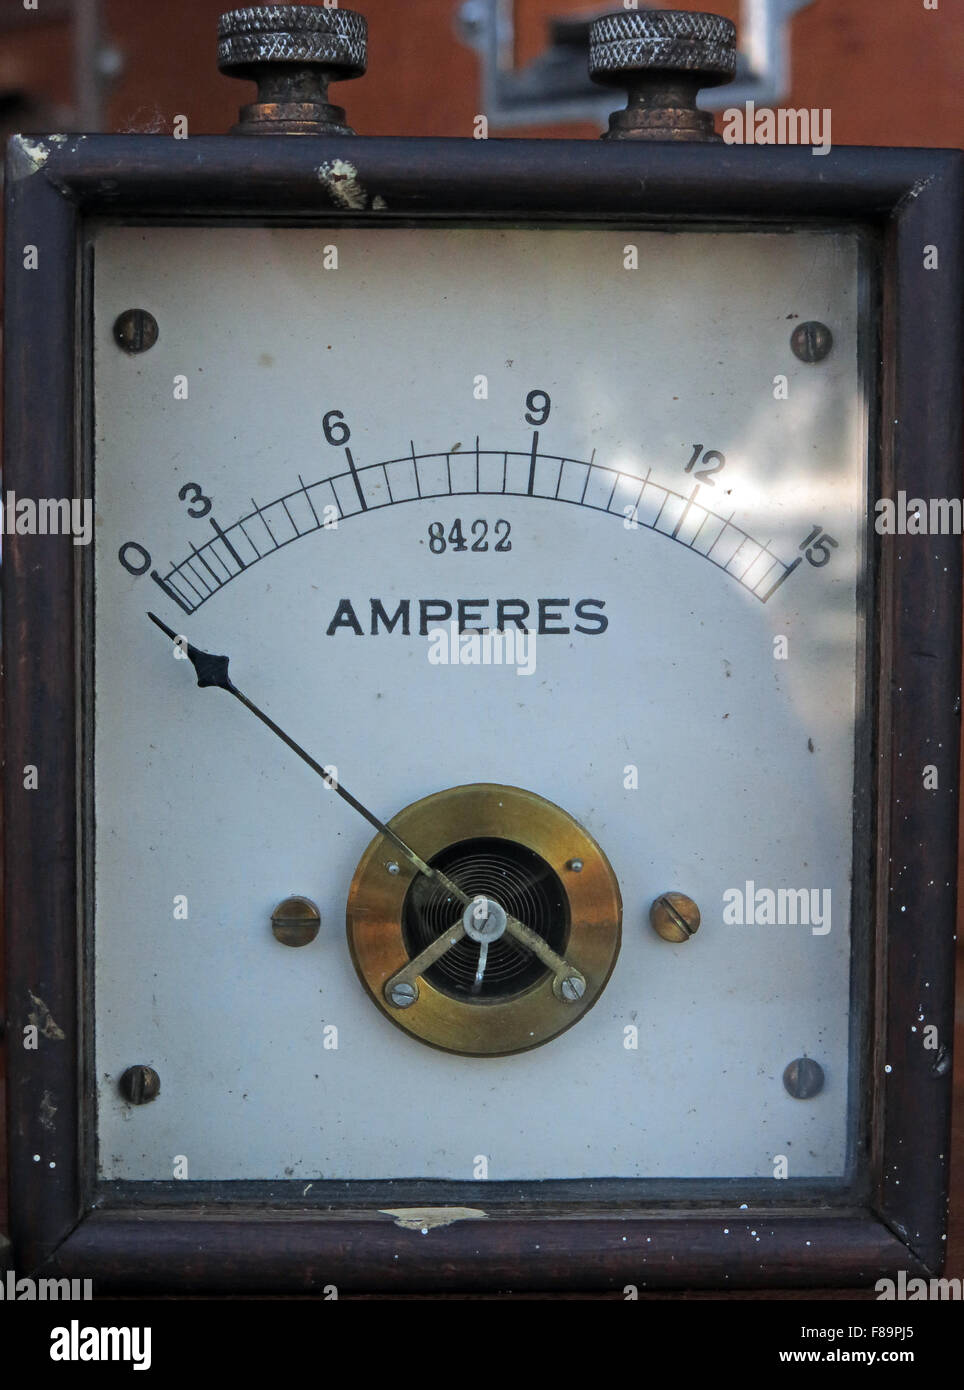 Vintage,antique,history,historic,simple,basic,old,power,classic,electric,electrical,electricity,ammeter,amp,ampere,amperes,amps,1900,1900s,1901,1902,1903,8422,wood,wooden,case,England,English,old,metre,British,GB,UK,industrial,industry,Amp Meter,Great Britain,GoTonySmith,Buy Pictures of,Buy Images Of